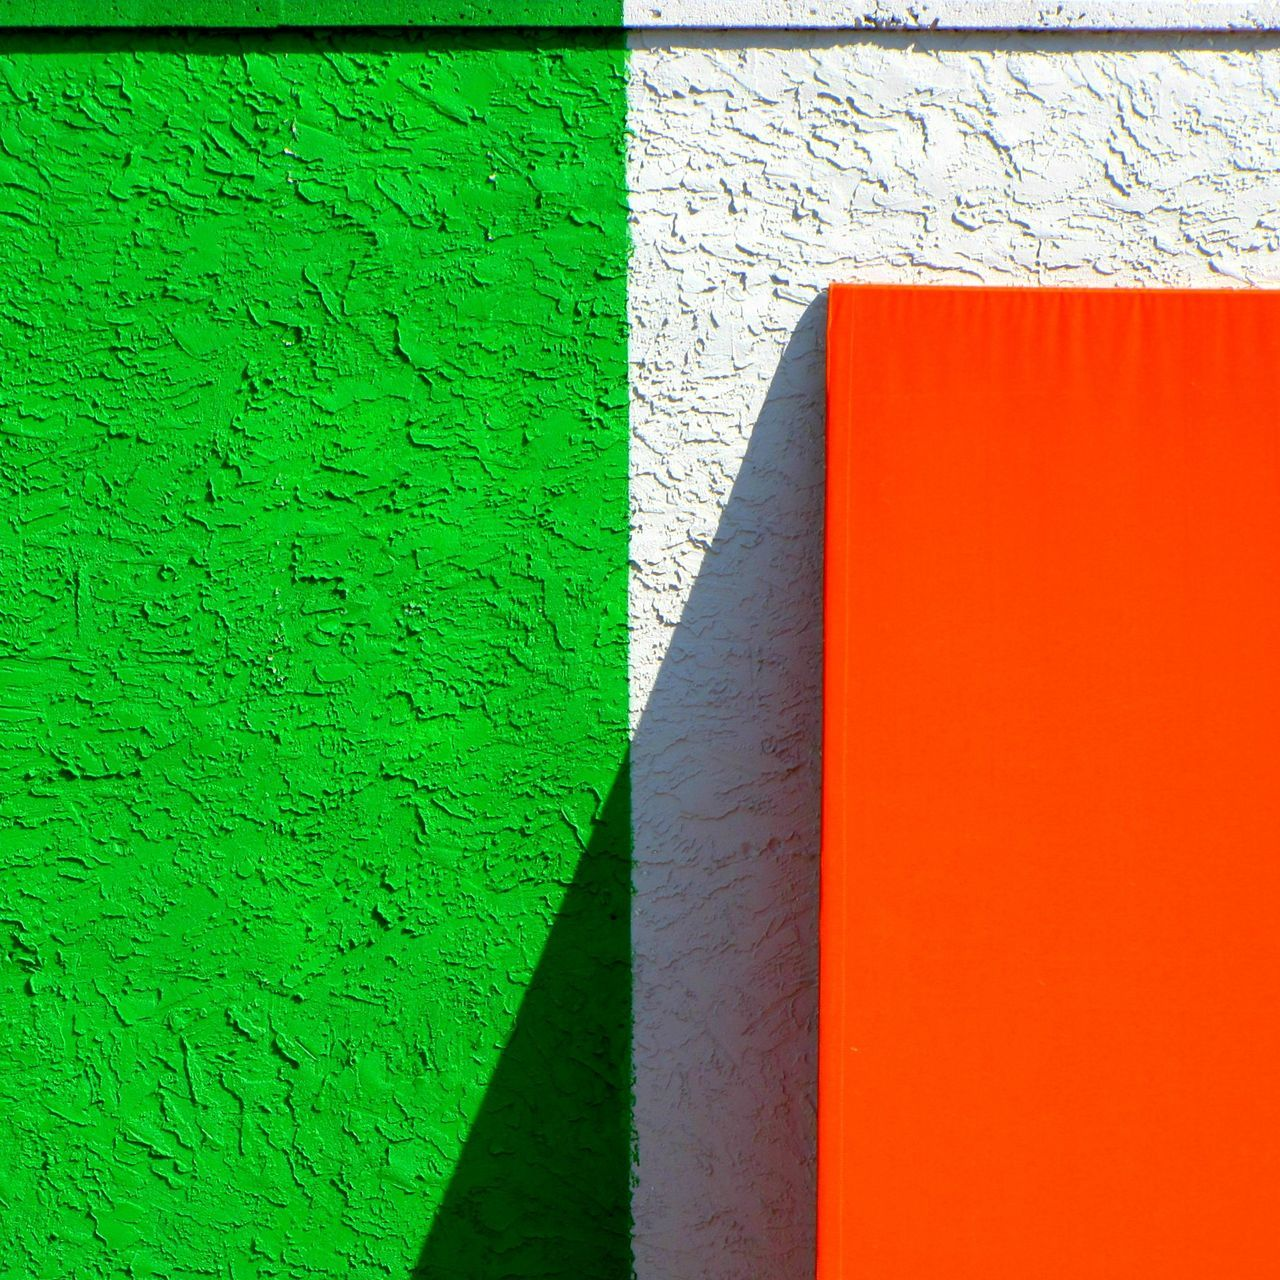 Architecture Backgrounds Brick Wall Building Exterior Built Structure Close-up Copy Space Day Full Frame Green Color Minimal Minimalism Multi Colored No People Outdoors Textured  Wall - Building Feature